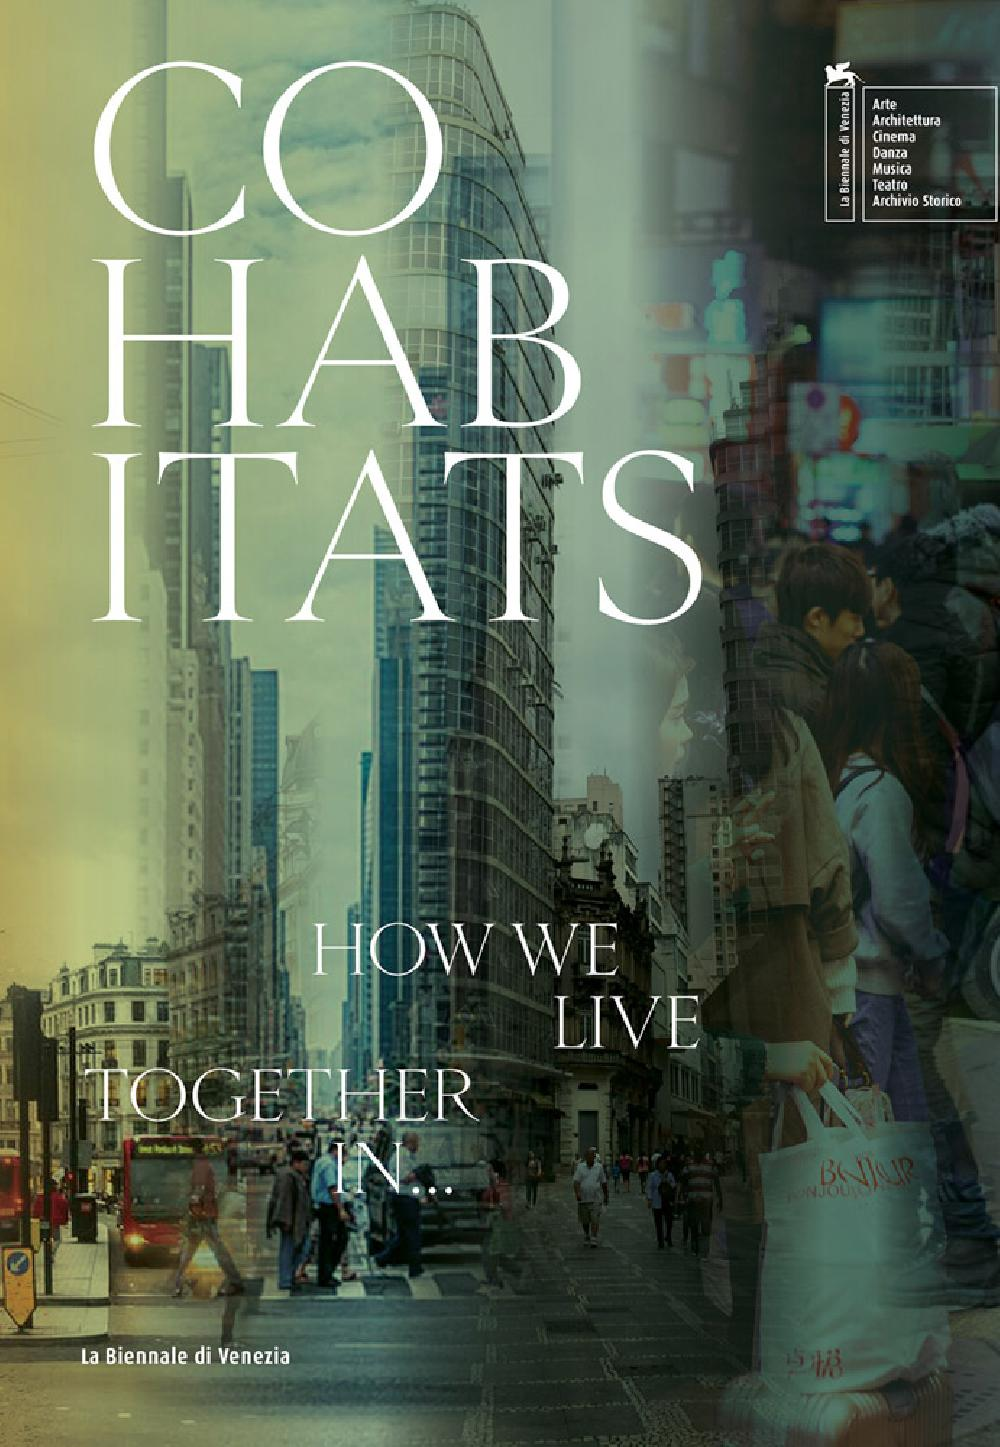 Co-habitats - How we do live together in...